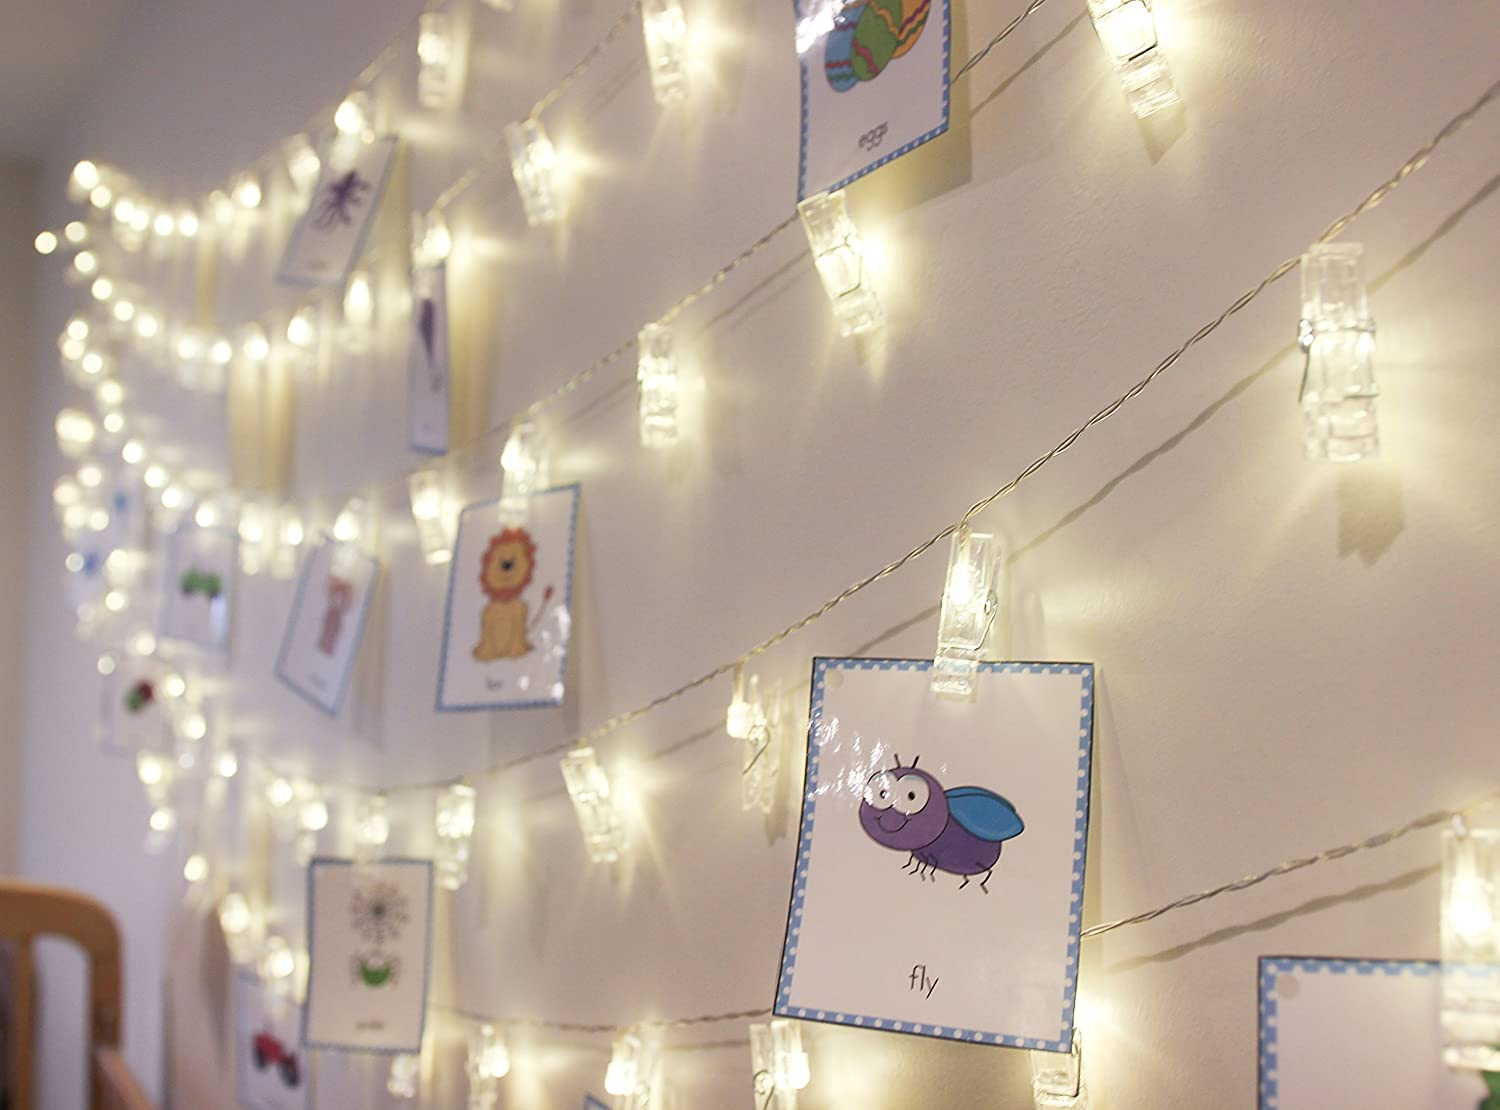 LED Fairy String Lights with Clips for Photos - 20 Battery Operated Warm  White Lights - Bedroom Indoor and Outdoor Decoration